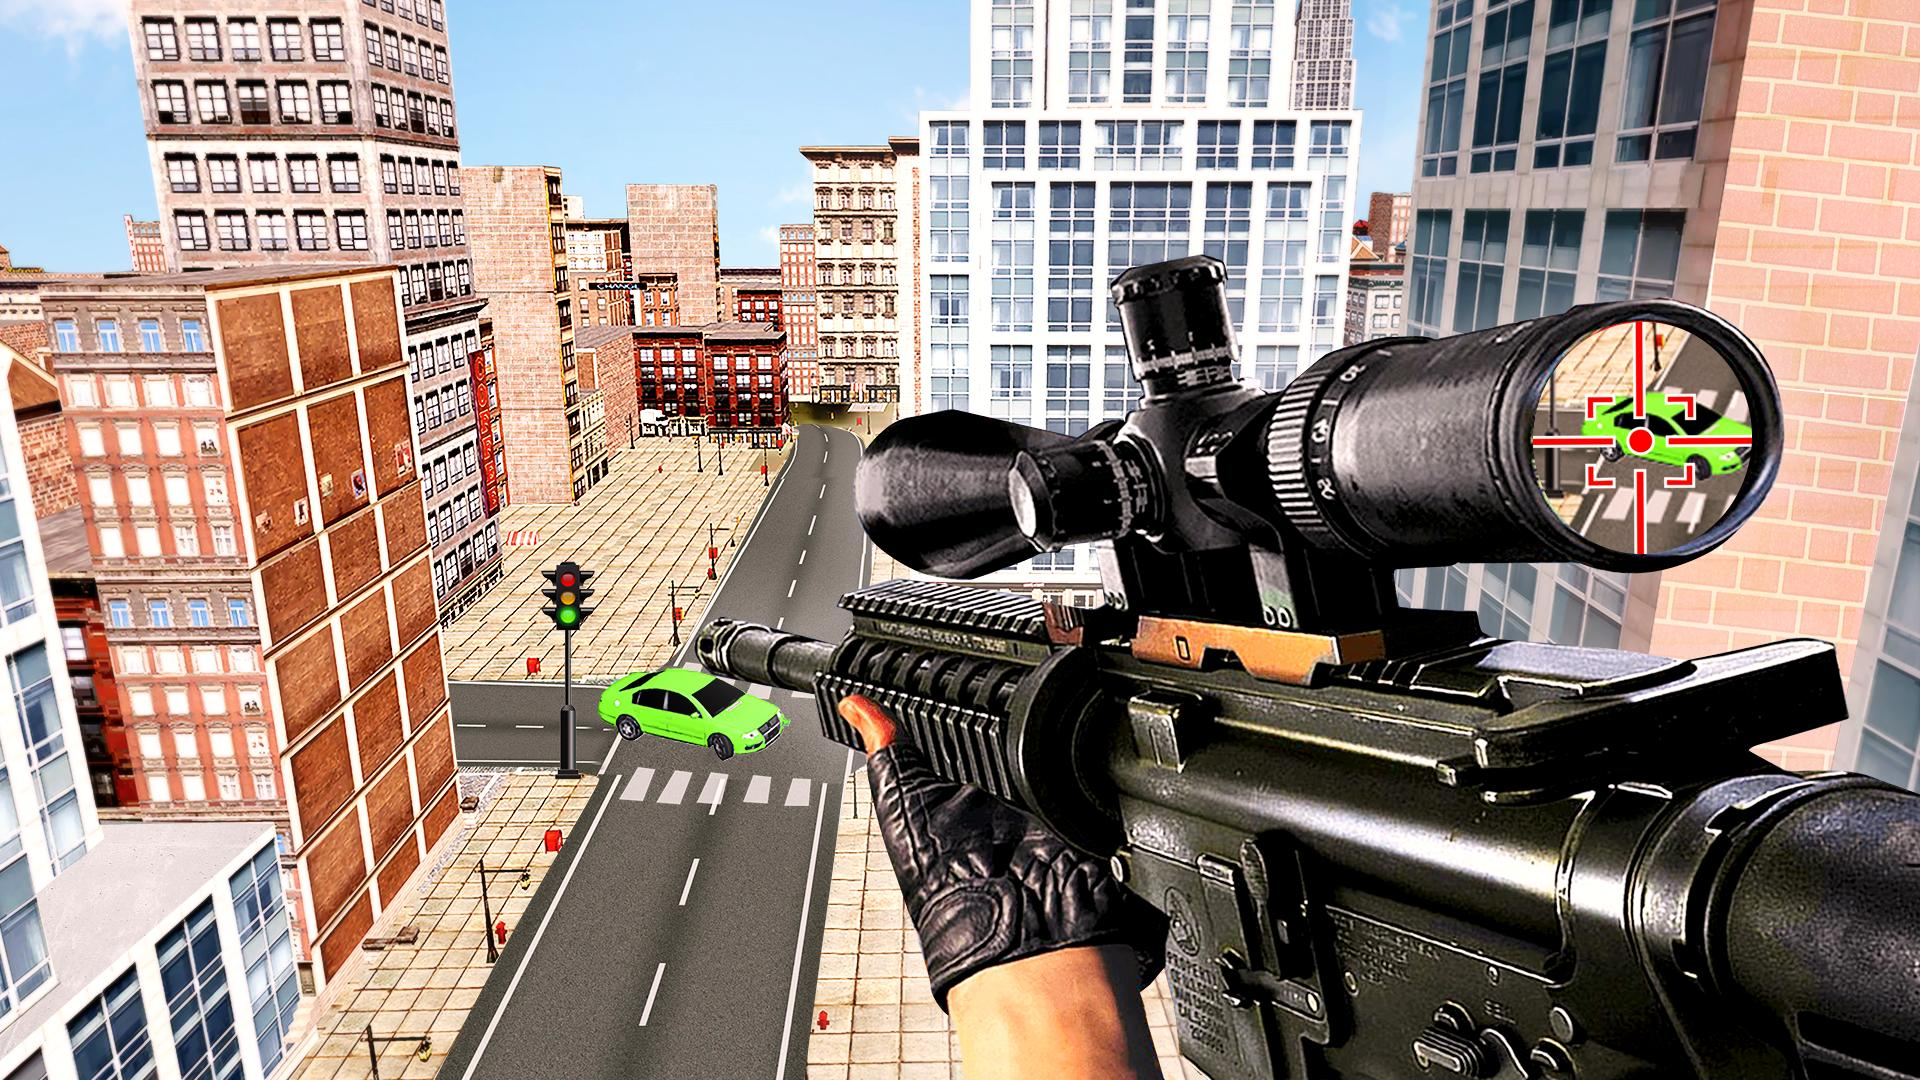 New Sniper 3d Shooting 2019 - Free Sniper Games 1.0 Screenshot 5